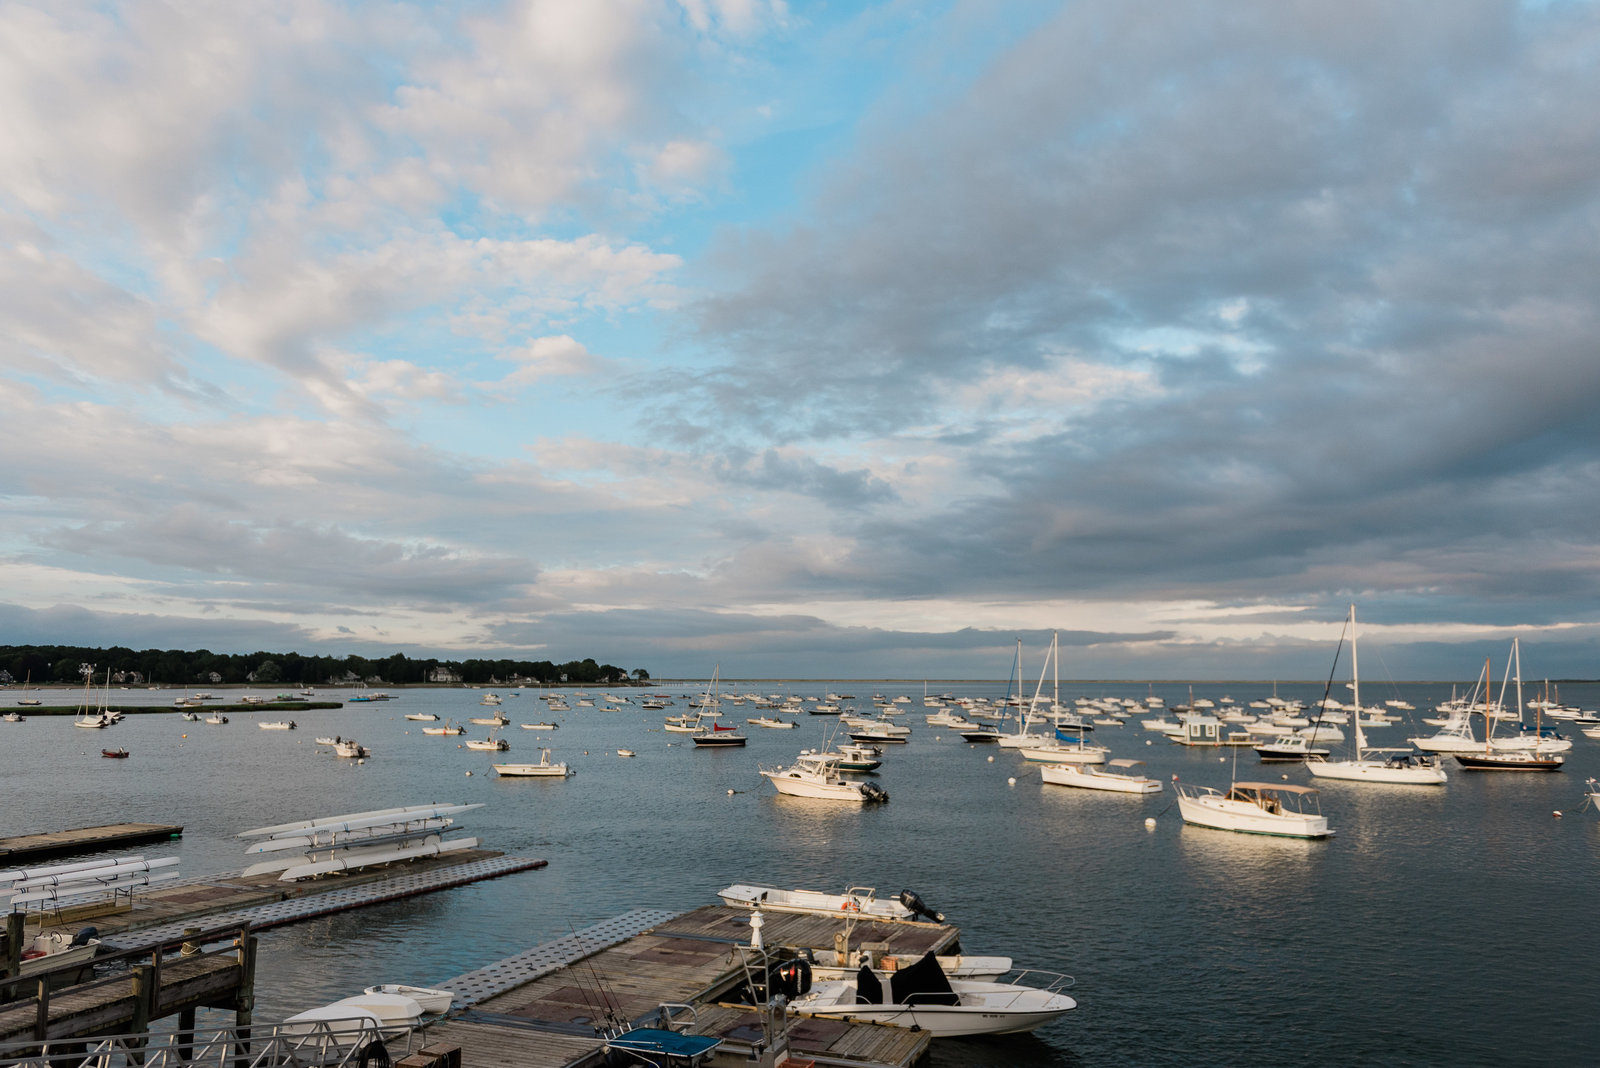 The view of the harbor from the top deck at a duxbury bay maritime school wedding